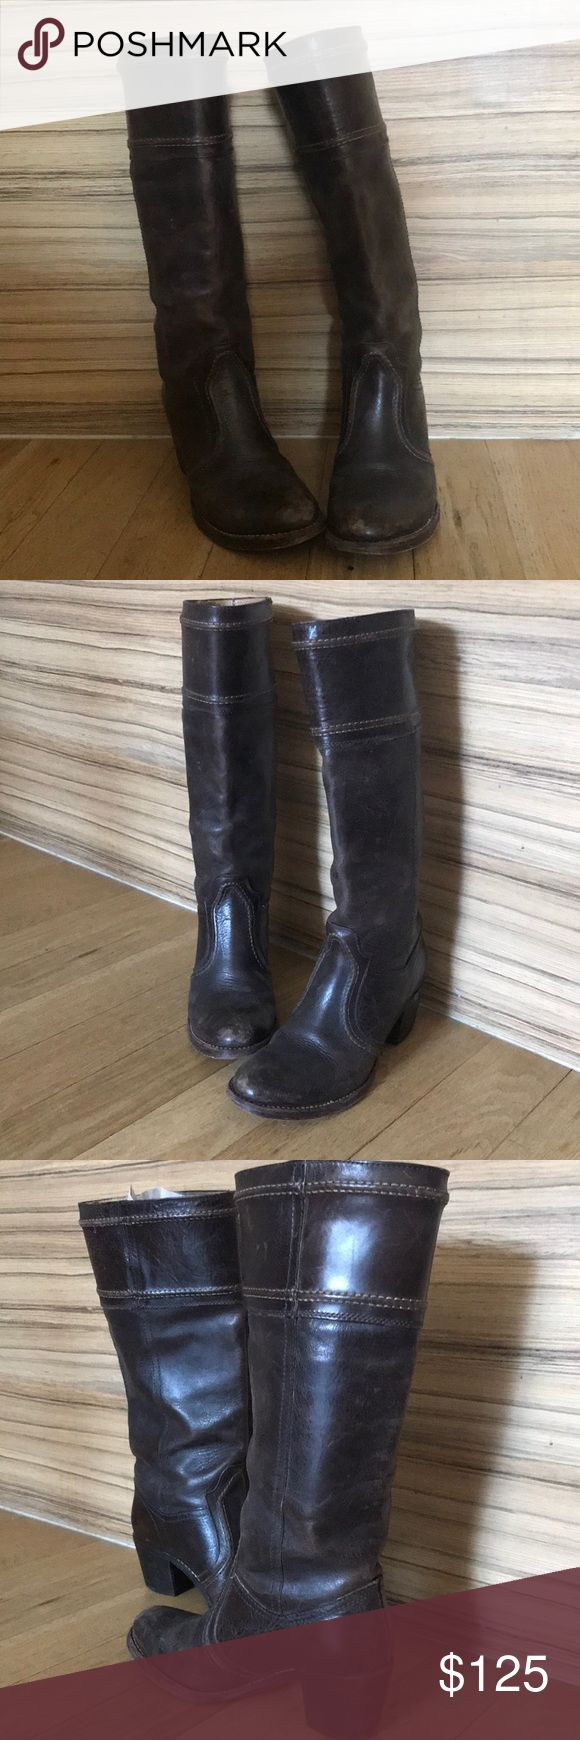 Frye riding boot Brown Frye riding boot.  Vintage feel, have been worn. Frye Shoes Heeled Boots